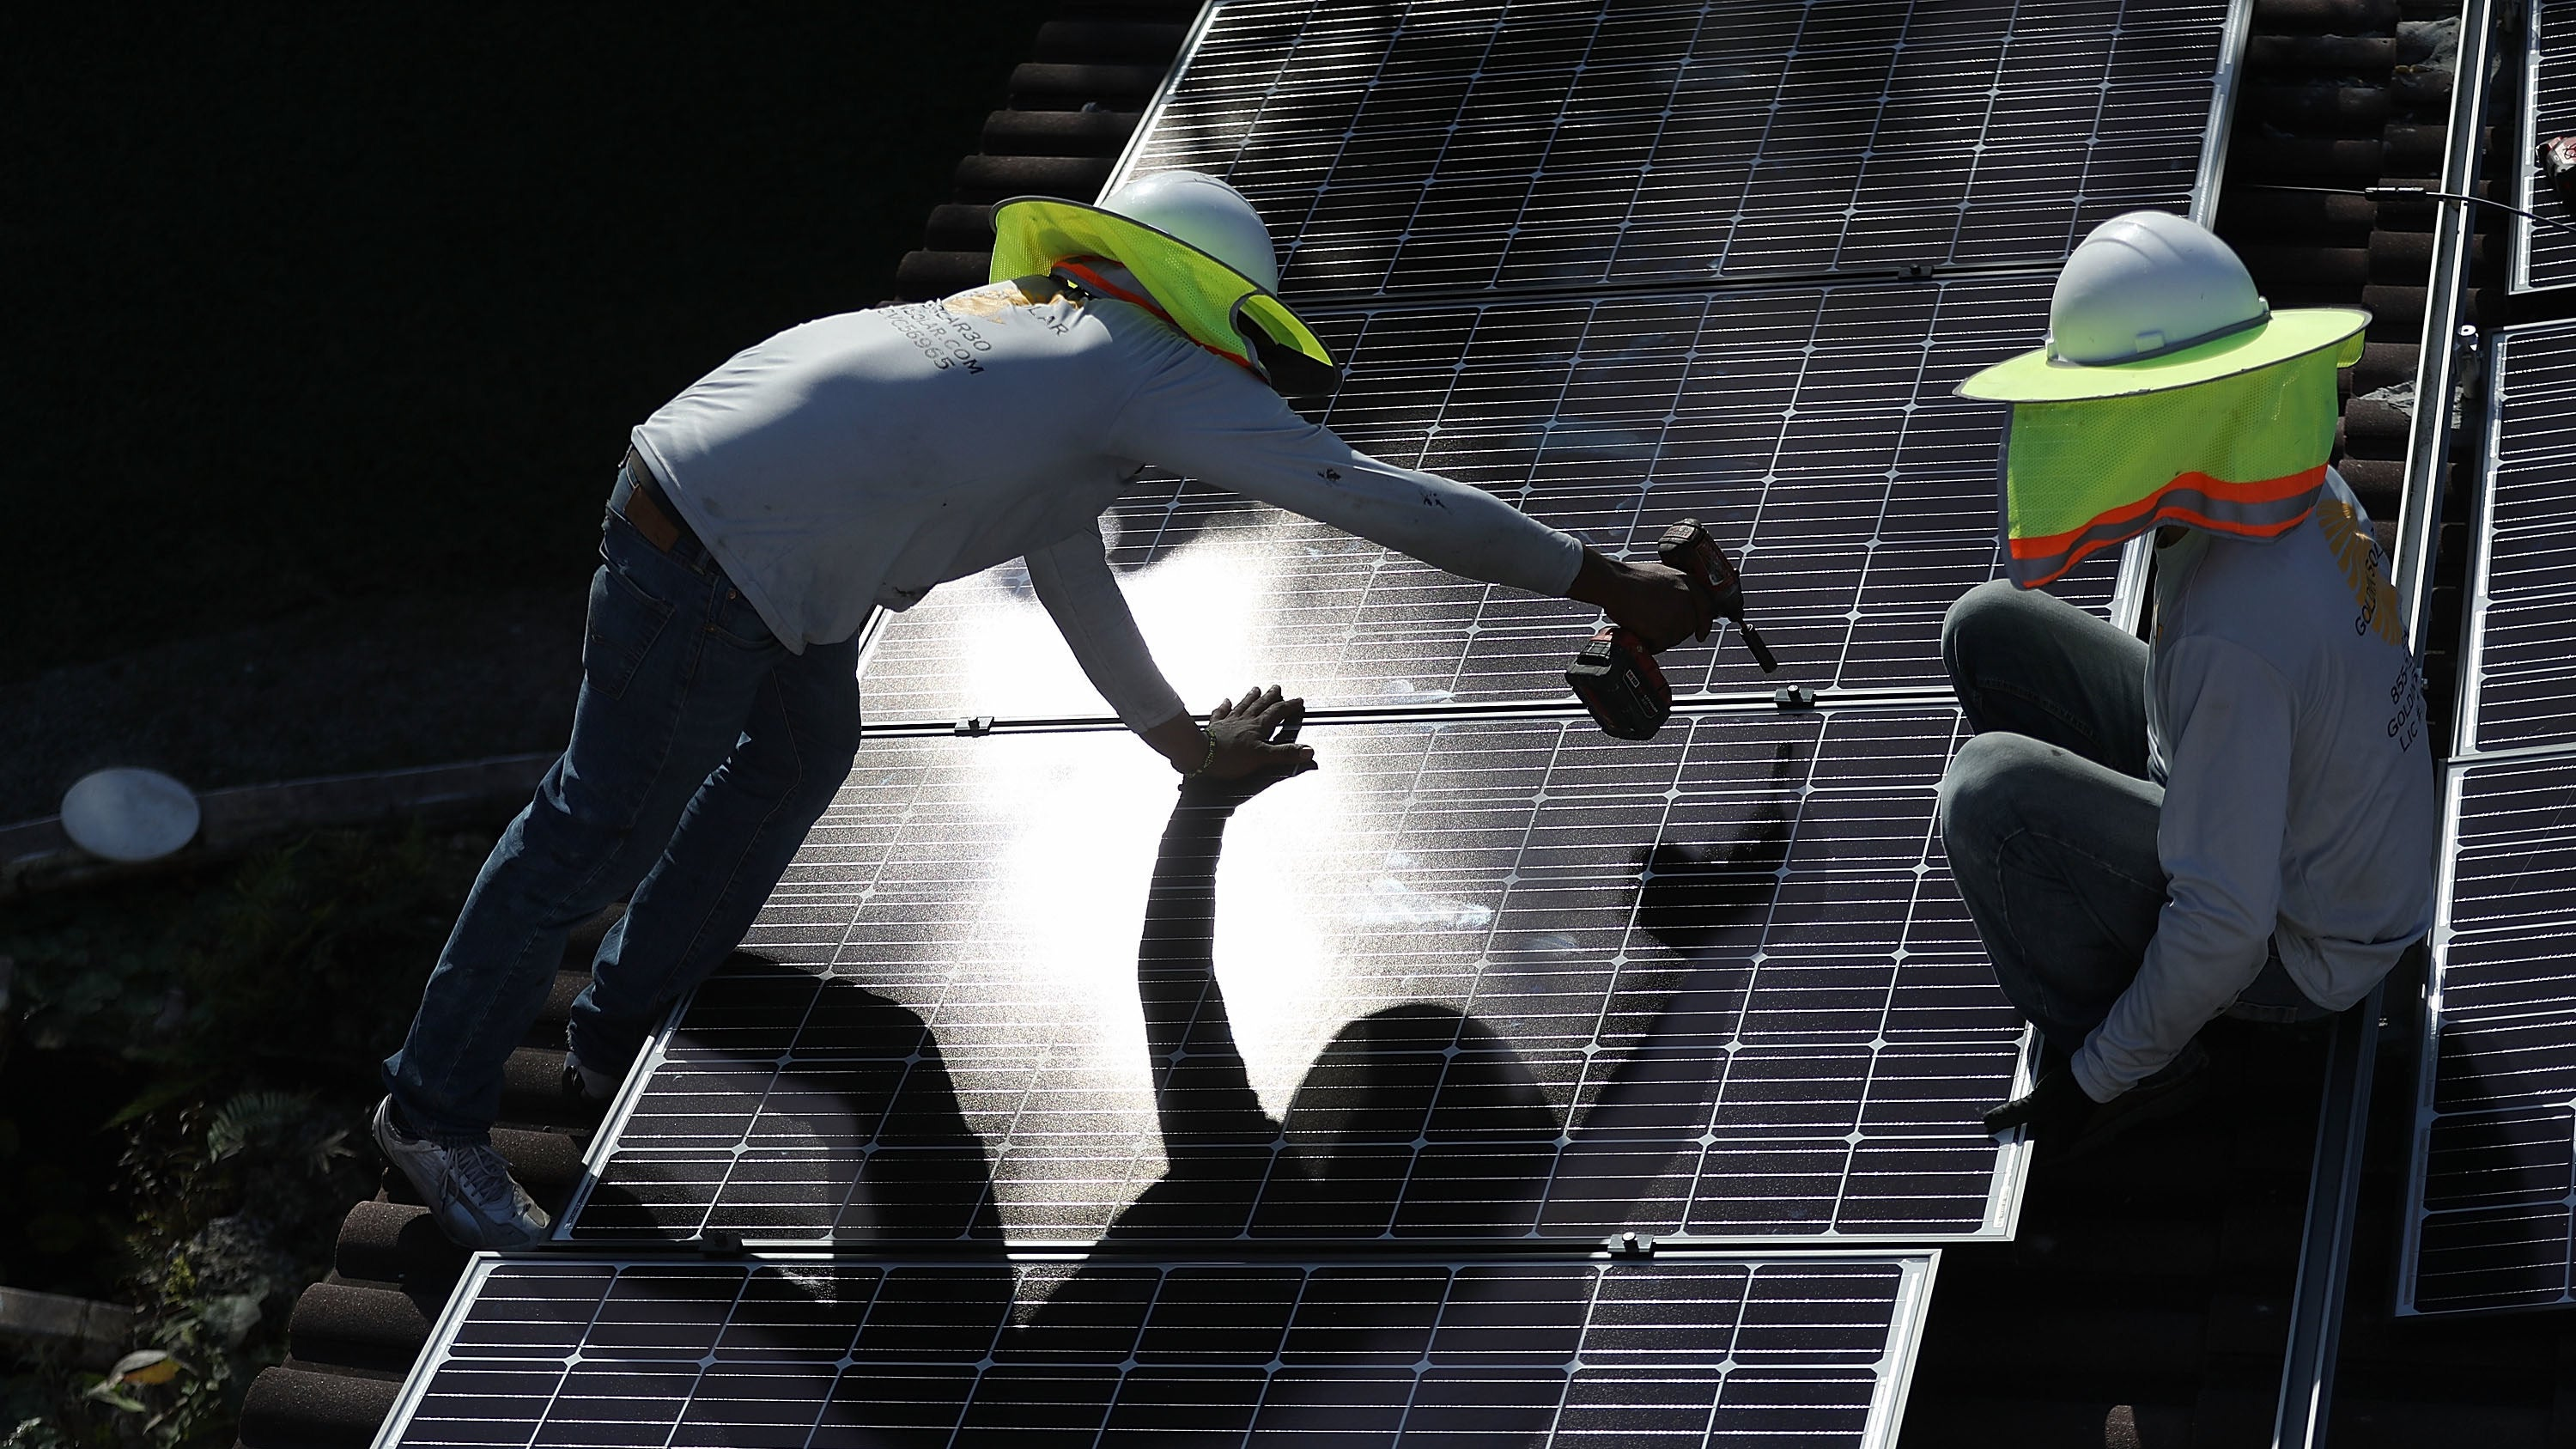 The US Lost More Than 100,000 Clean Energy Jobs In March Alone